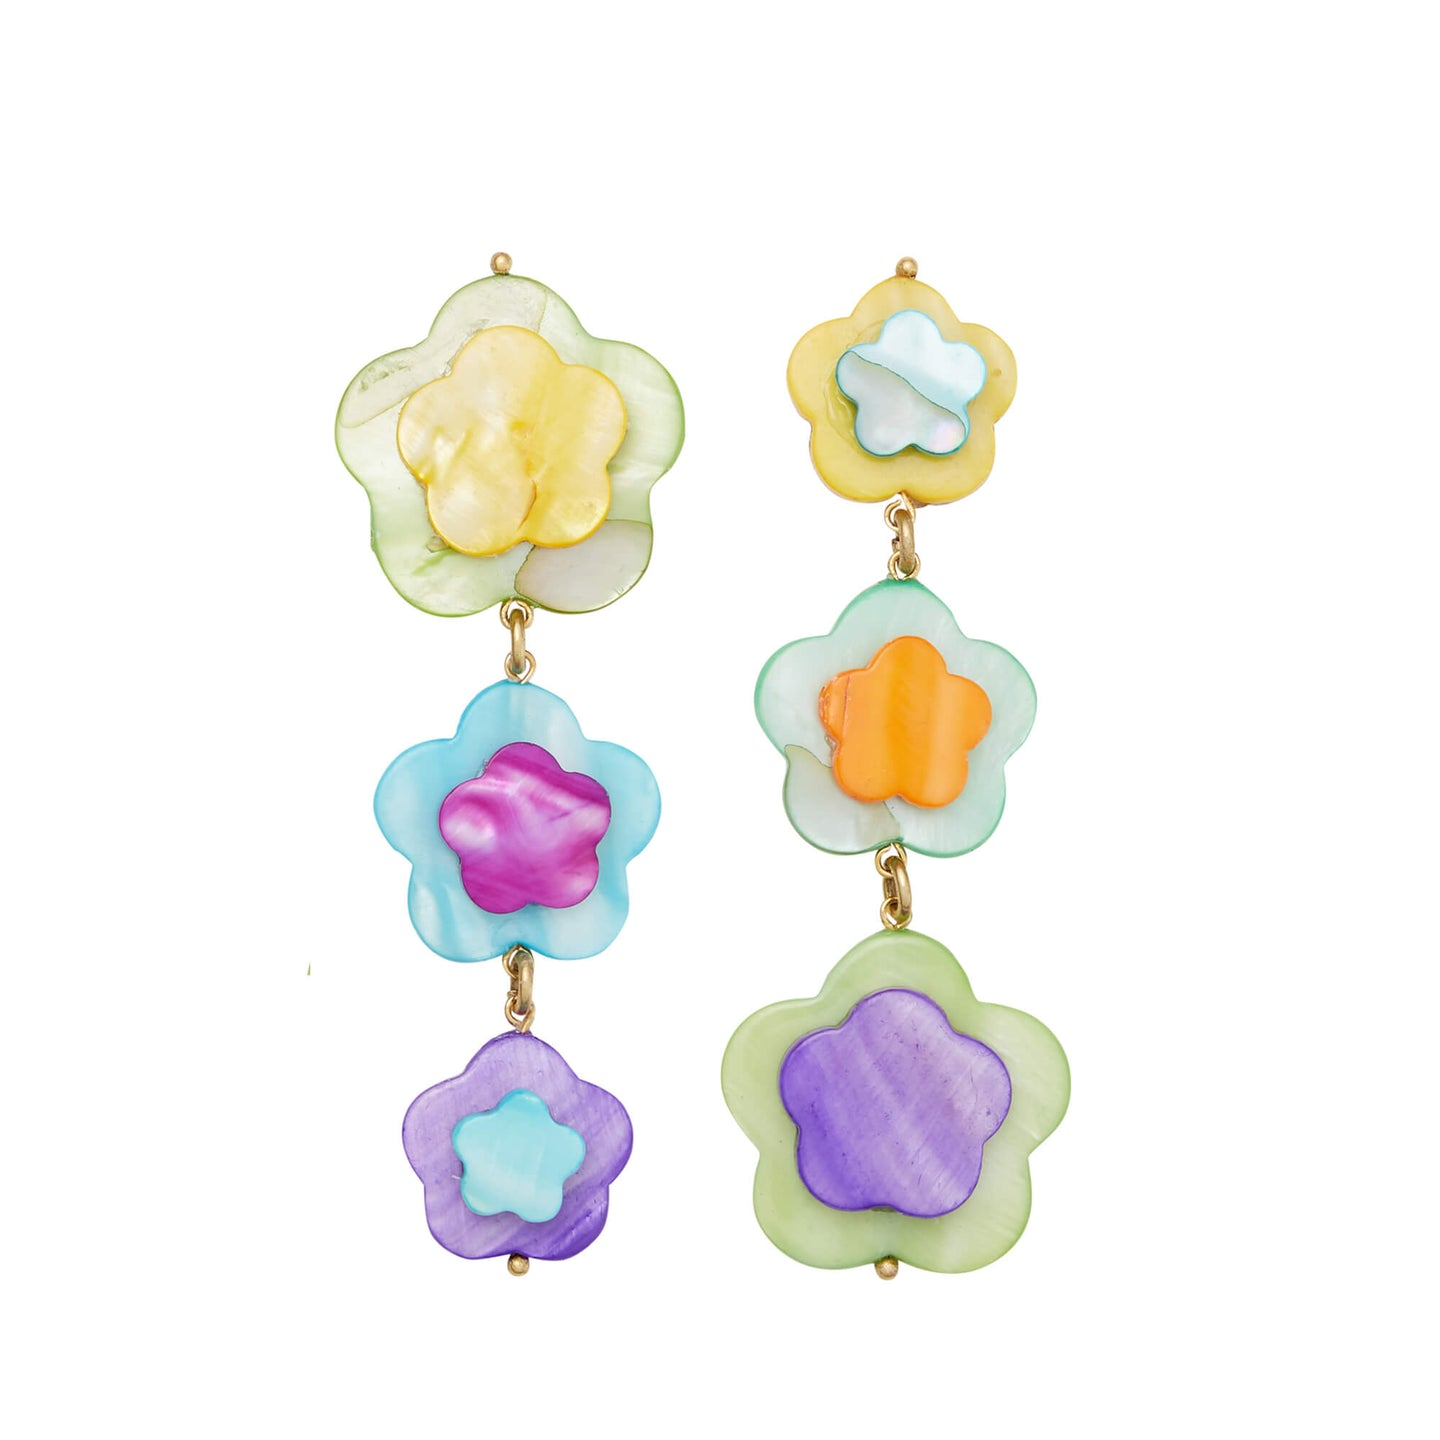 Tutti Fruity Earrings